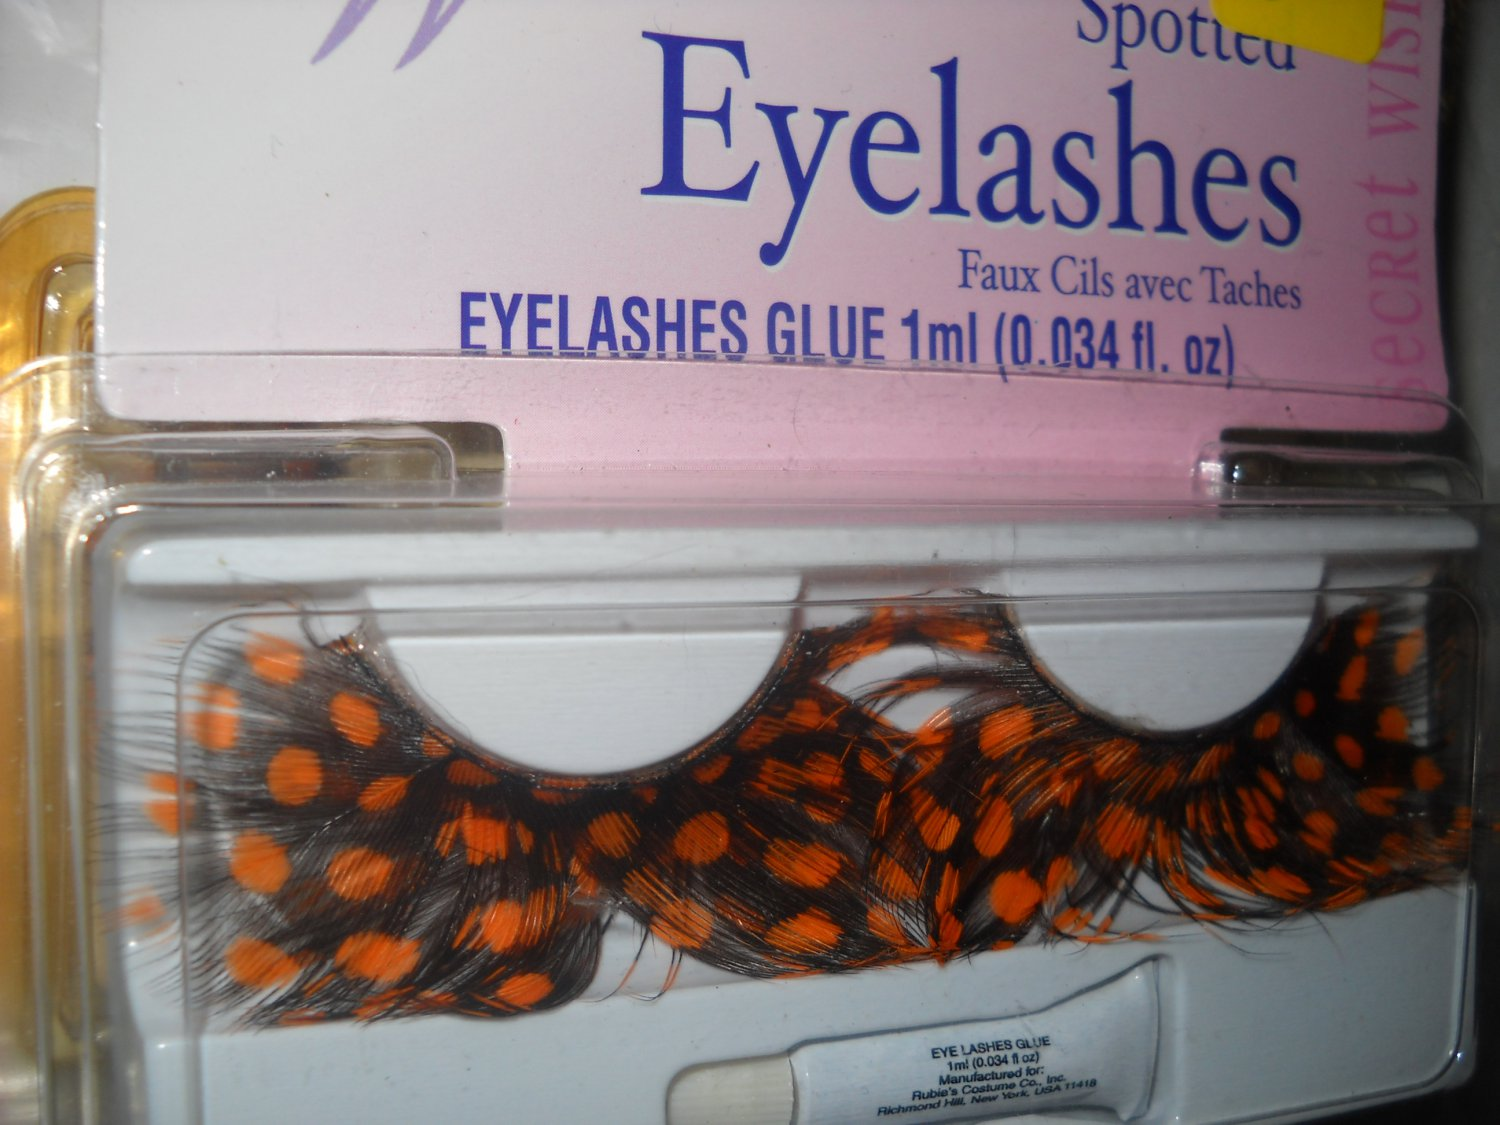 Spotted Feathered Costume Orange Eyelashes shipped free